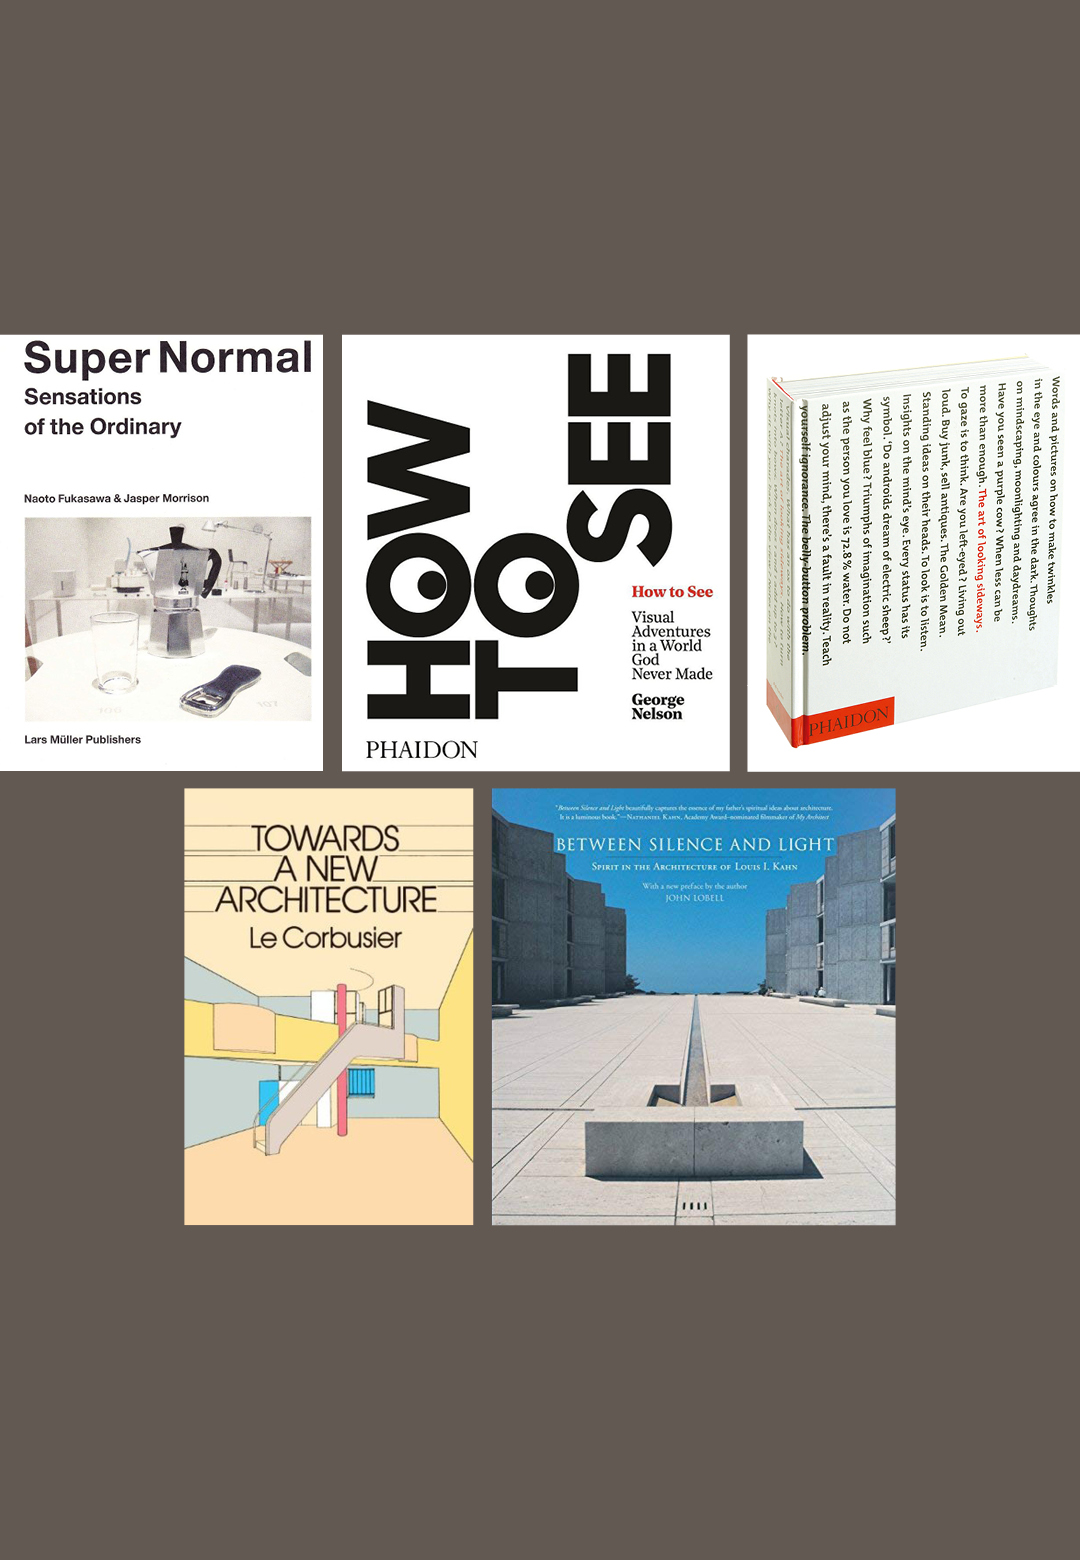 Five book recommendations for architects and design enthusiasts | Books to read during COVID-19 lockdown | STIRworld